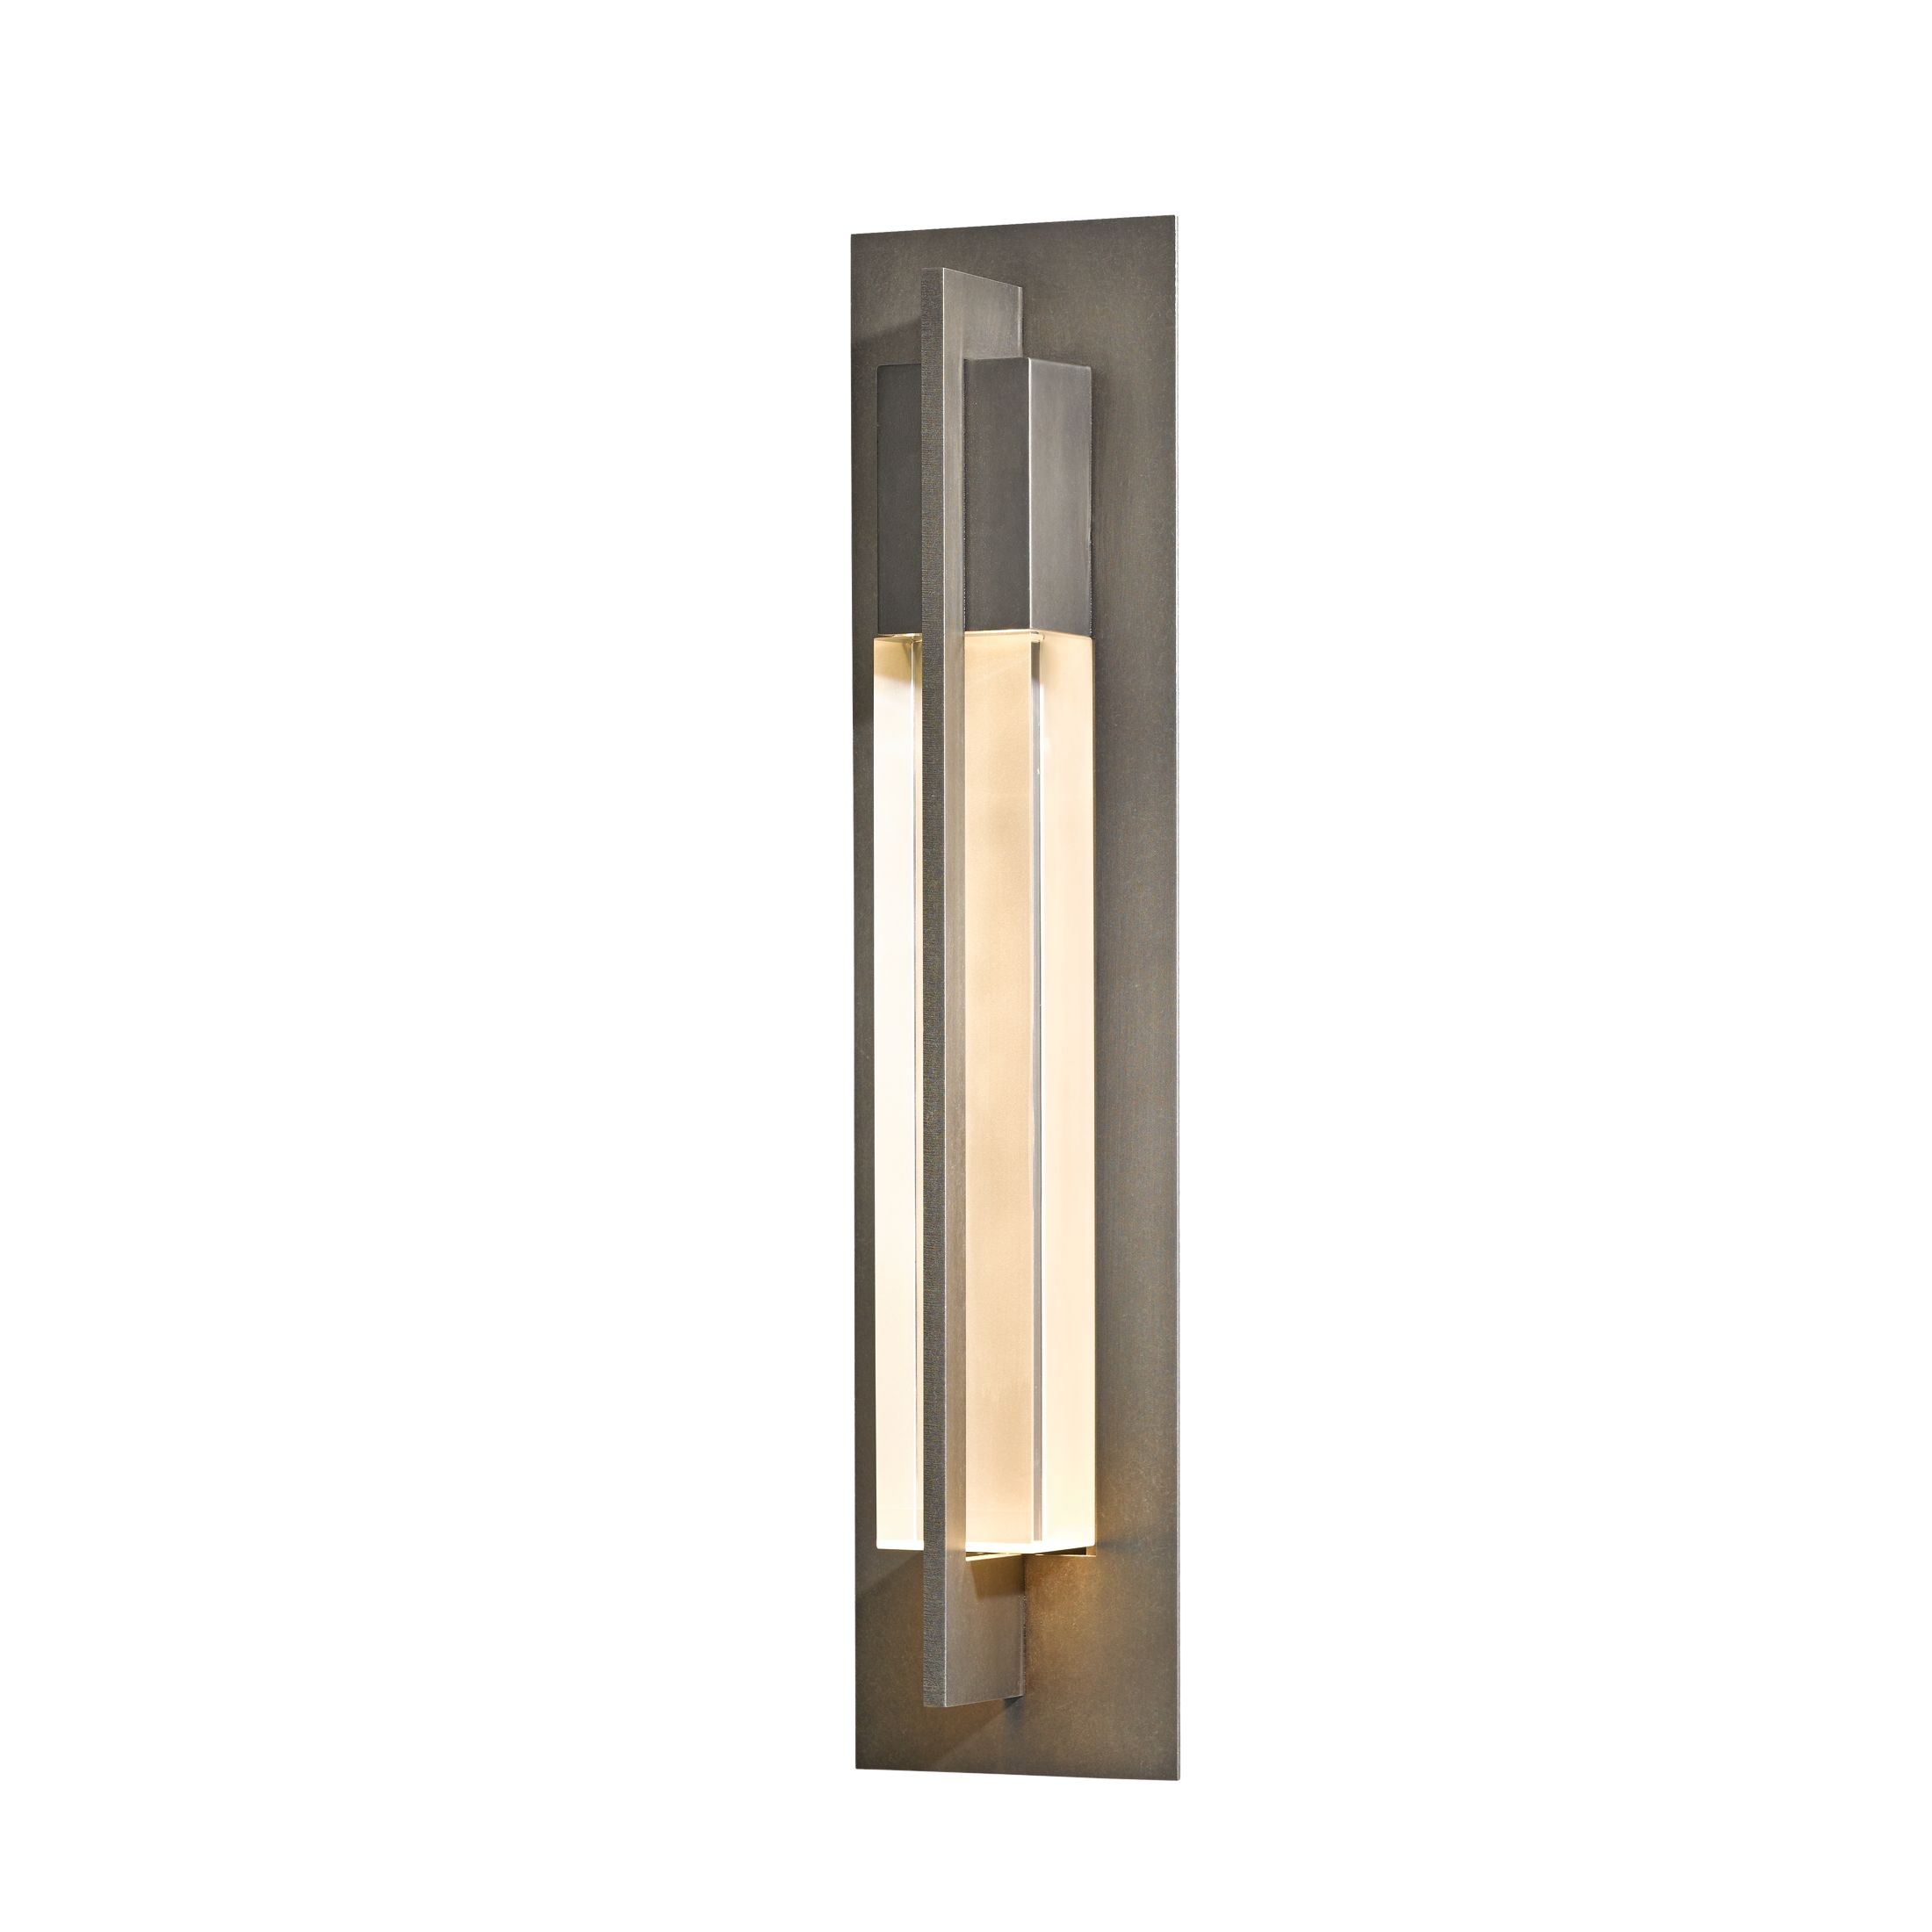 Thumbnail for Axis Large Interior Sconce